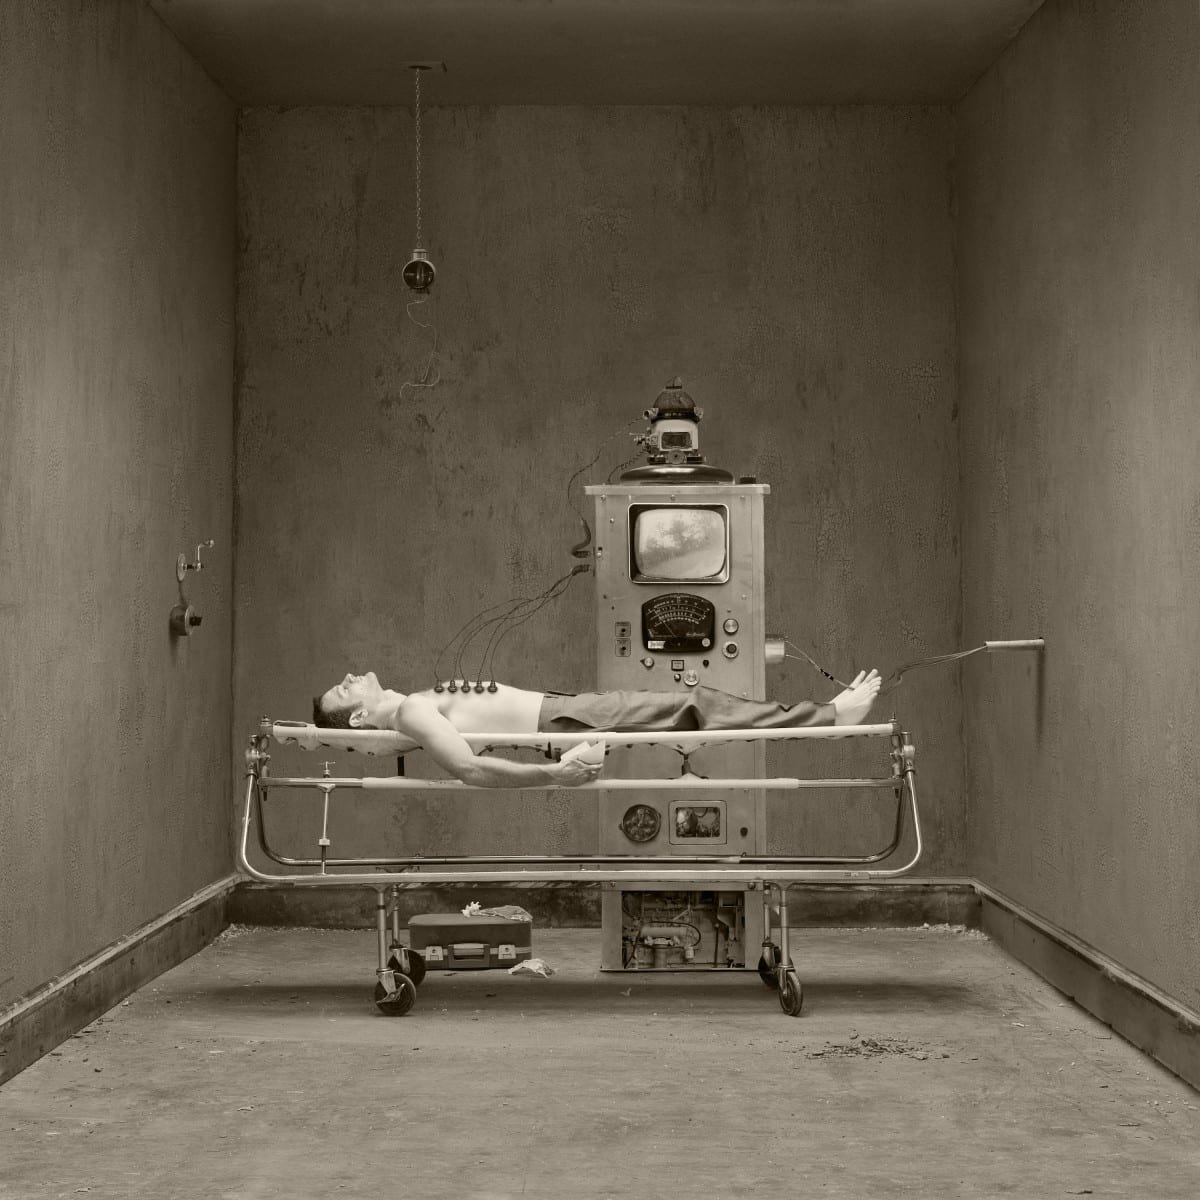 """Jennifer B. Hudson, Safekeeping from the Series, Medic, Pigment Ink Print, 10""""x10"""",  Edition of 10, 2011"""